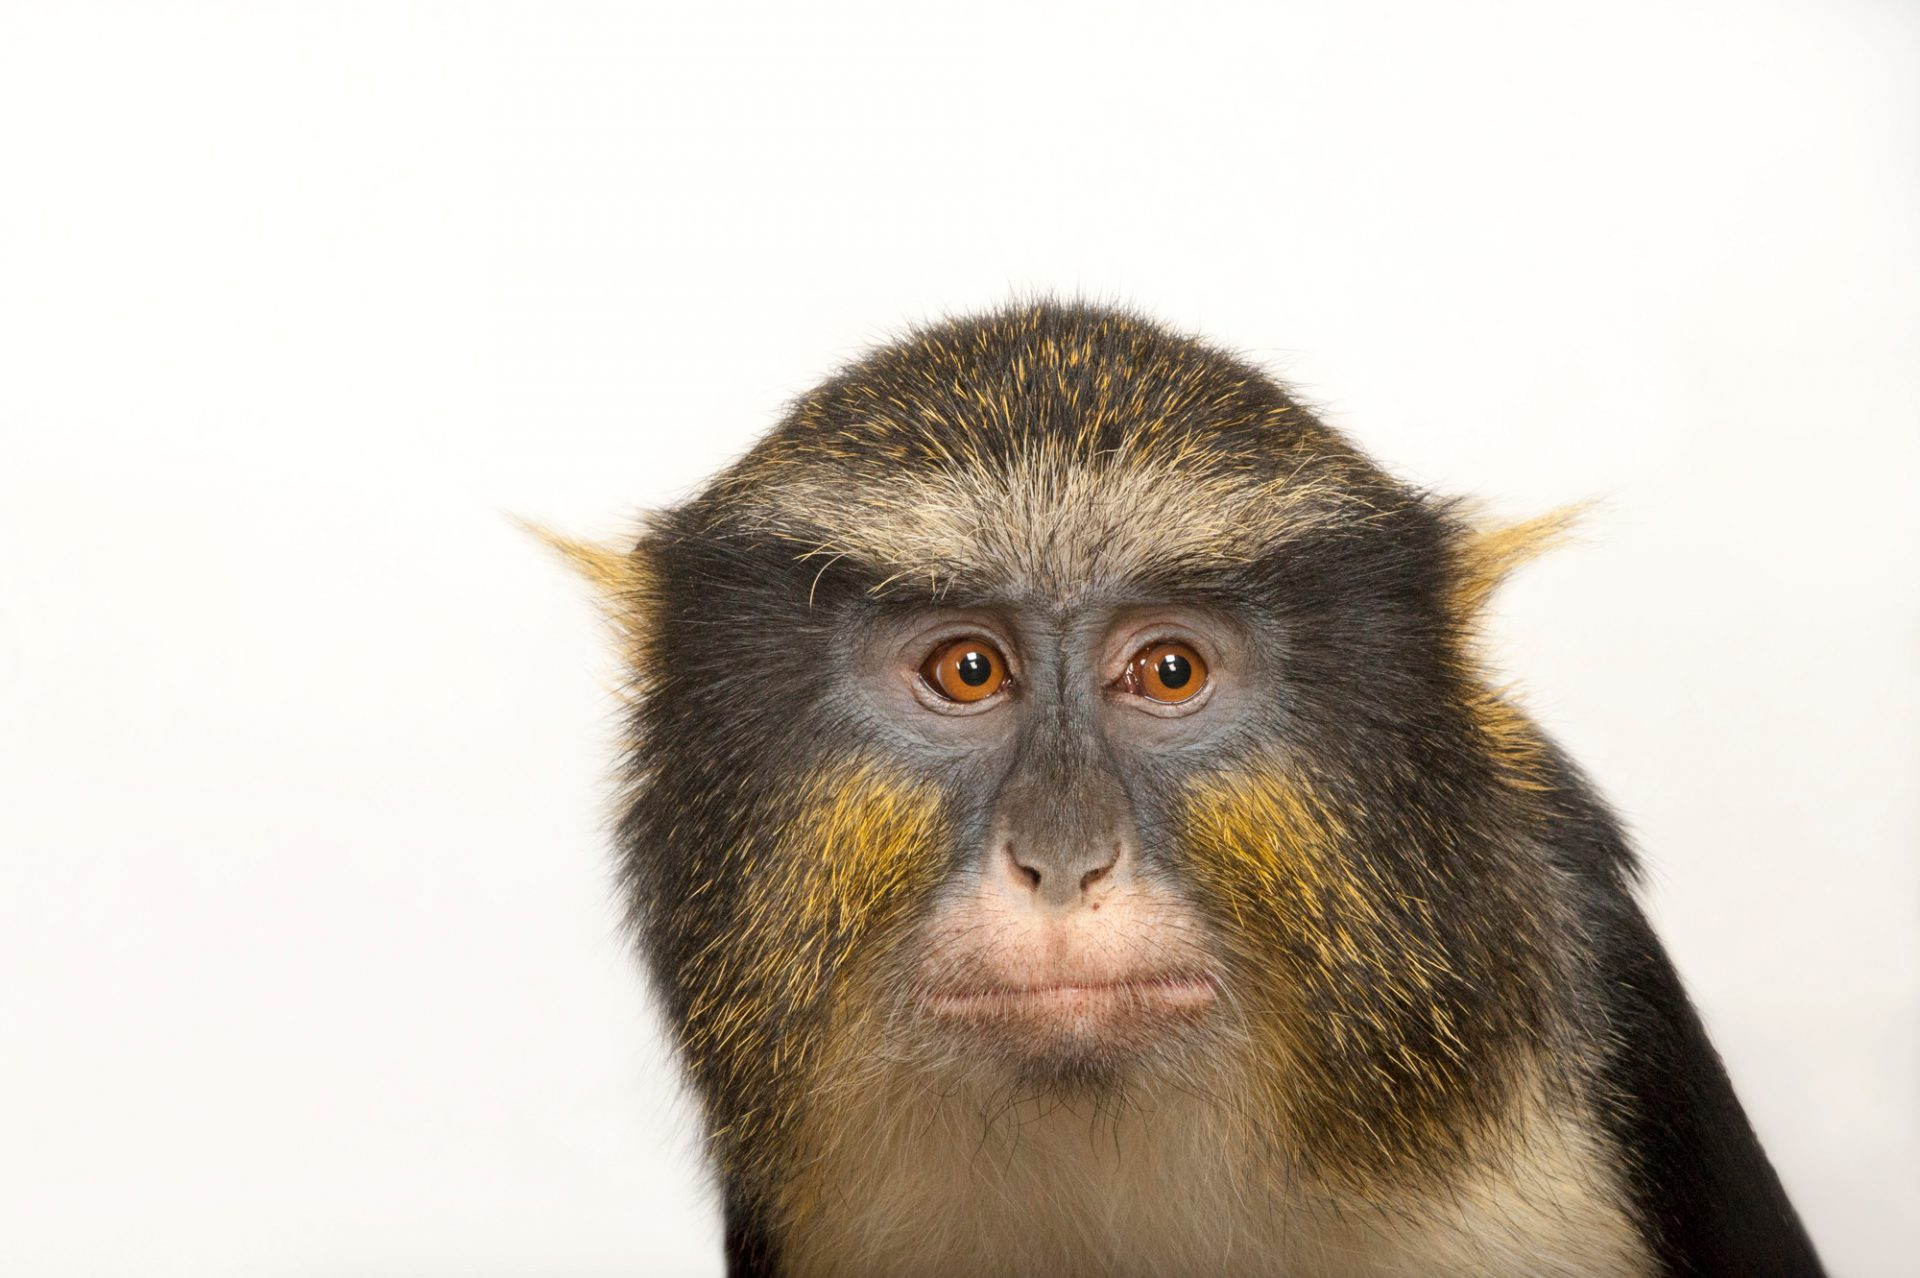 Wolf's guenon (Cercopithecus wolfi) at the Cleveland Metroparks Zoo.